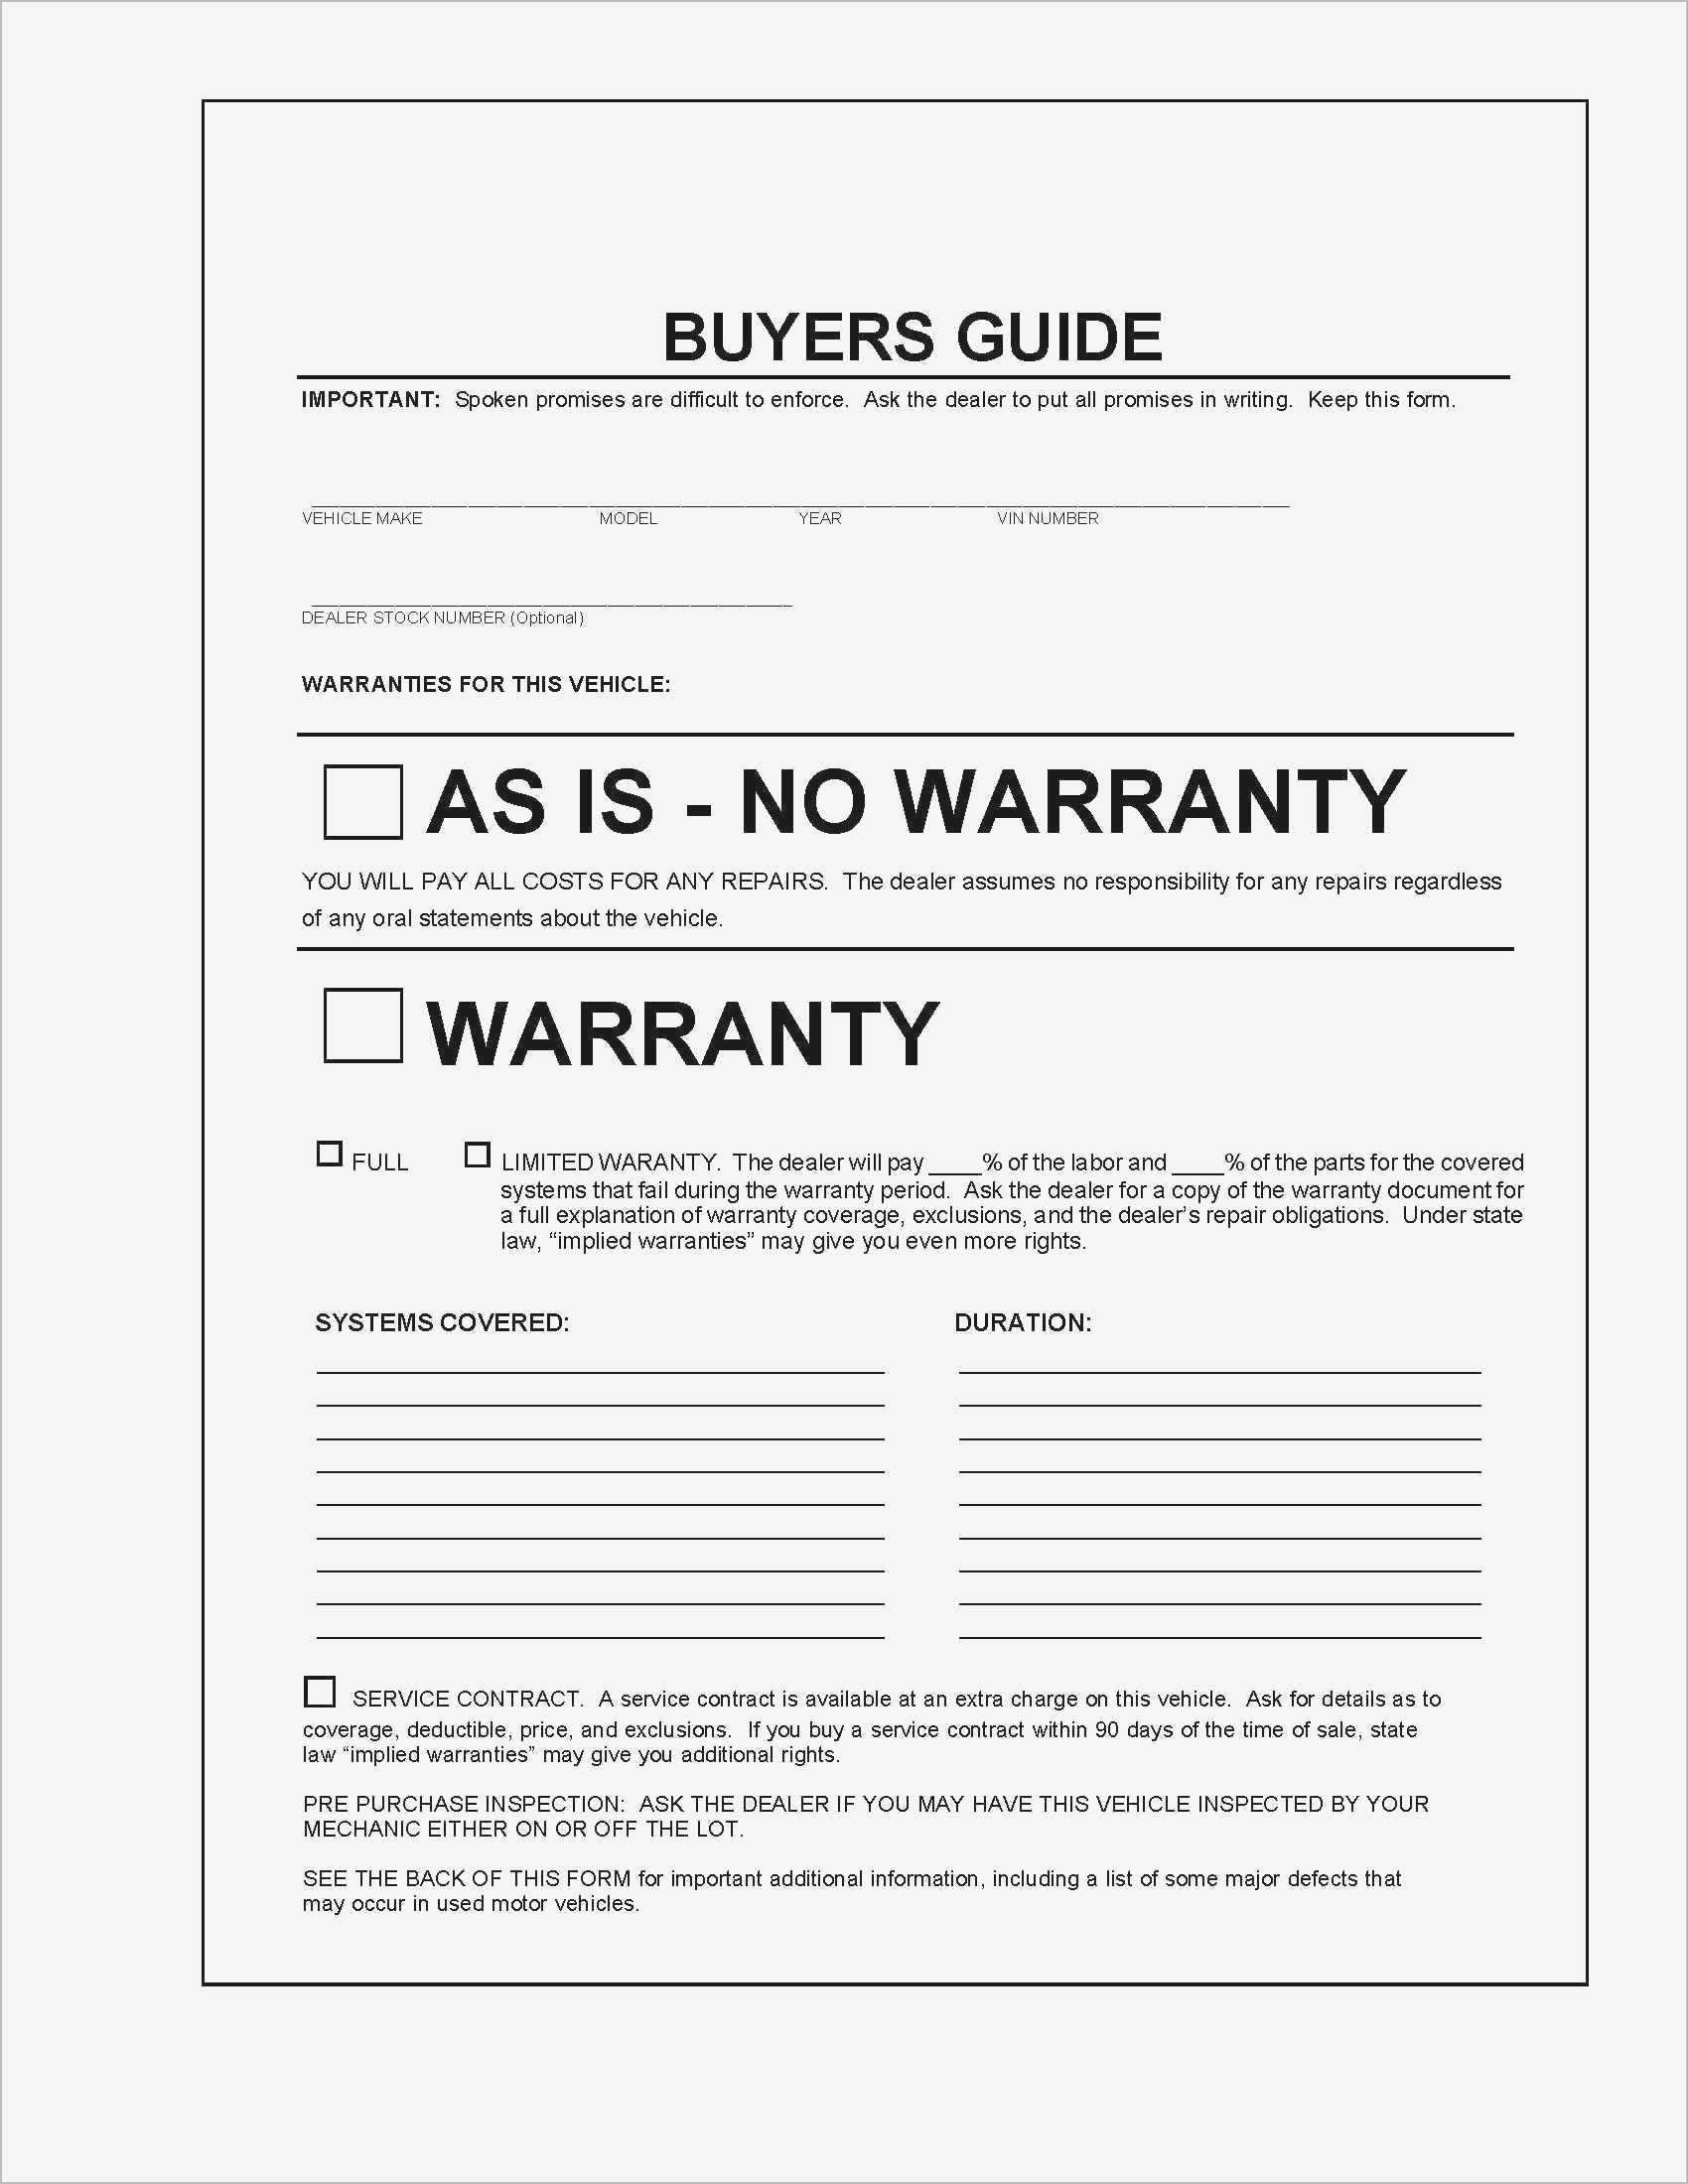 Buy Sell Agreement Form Pdf